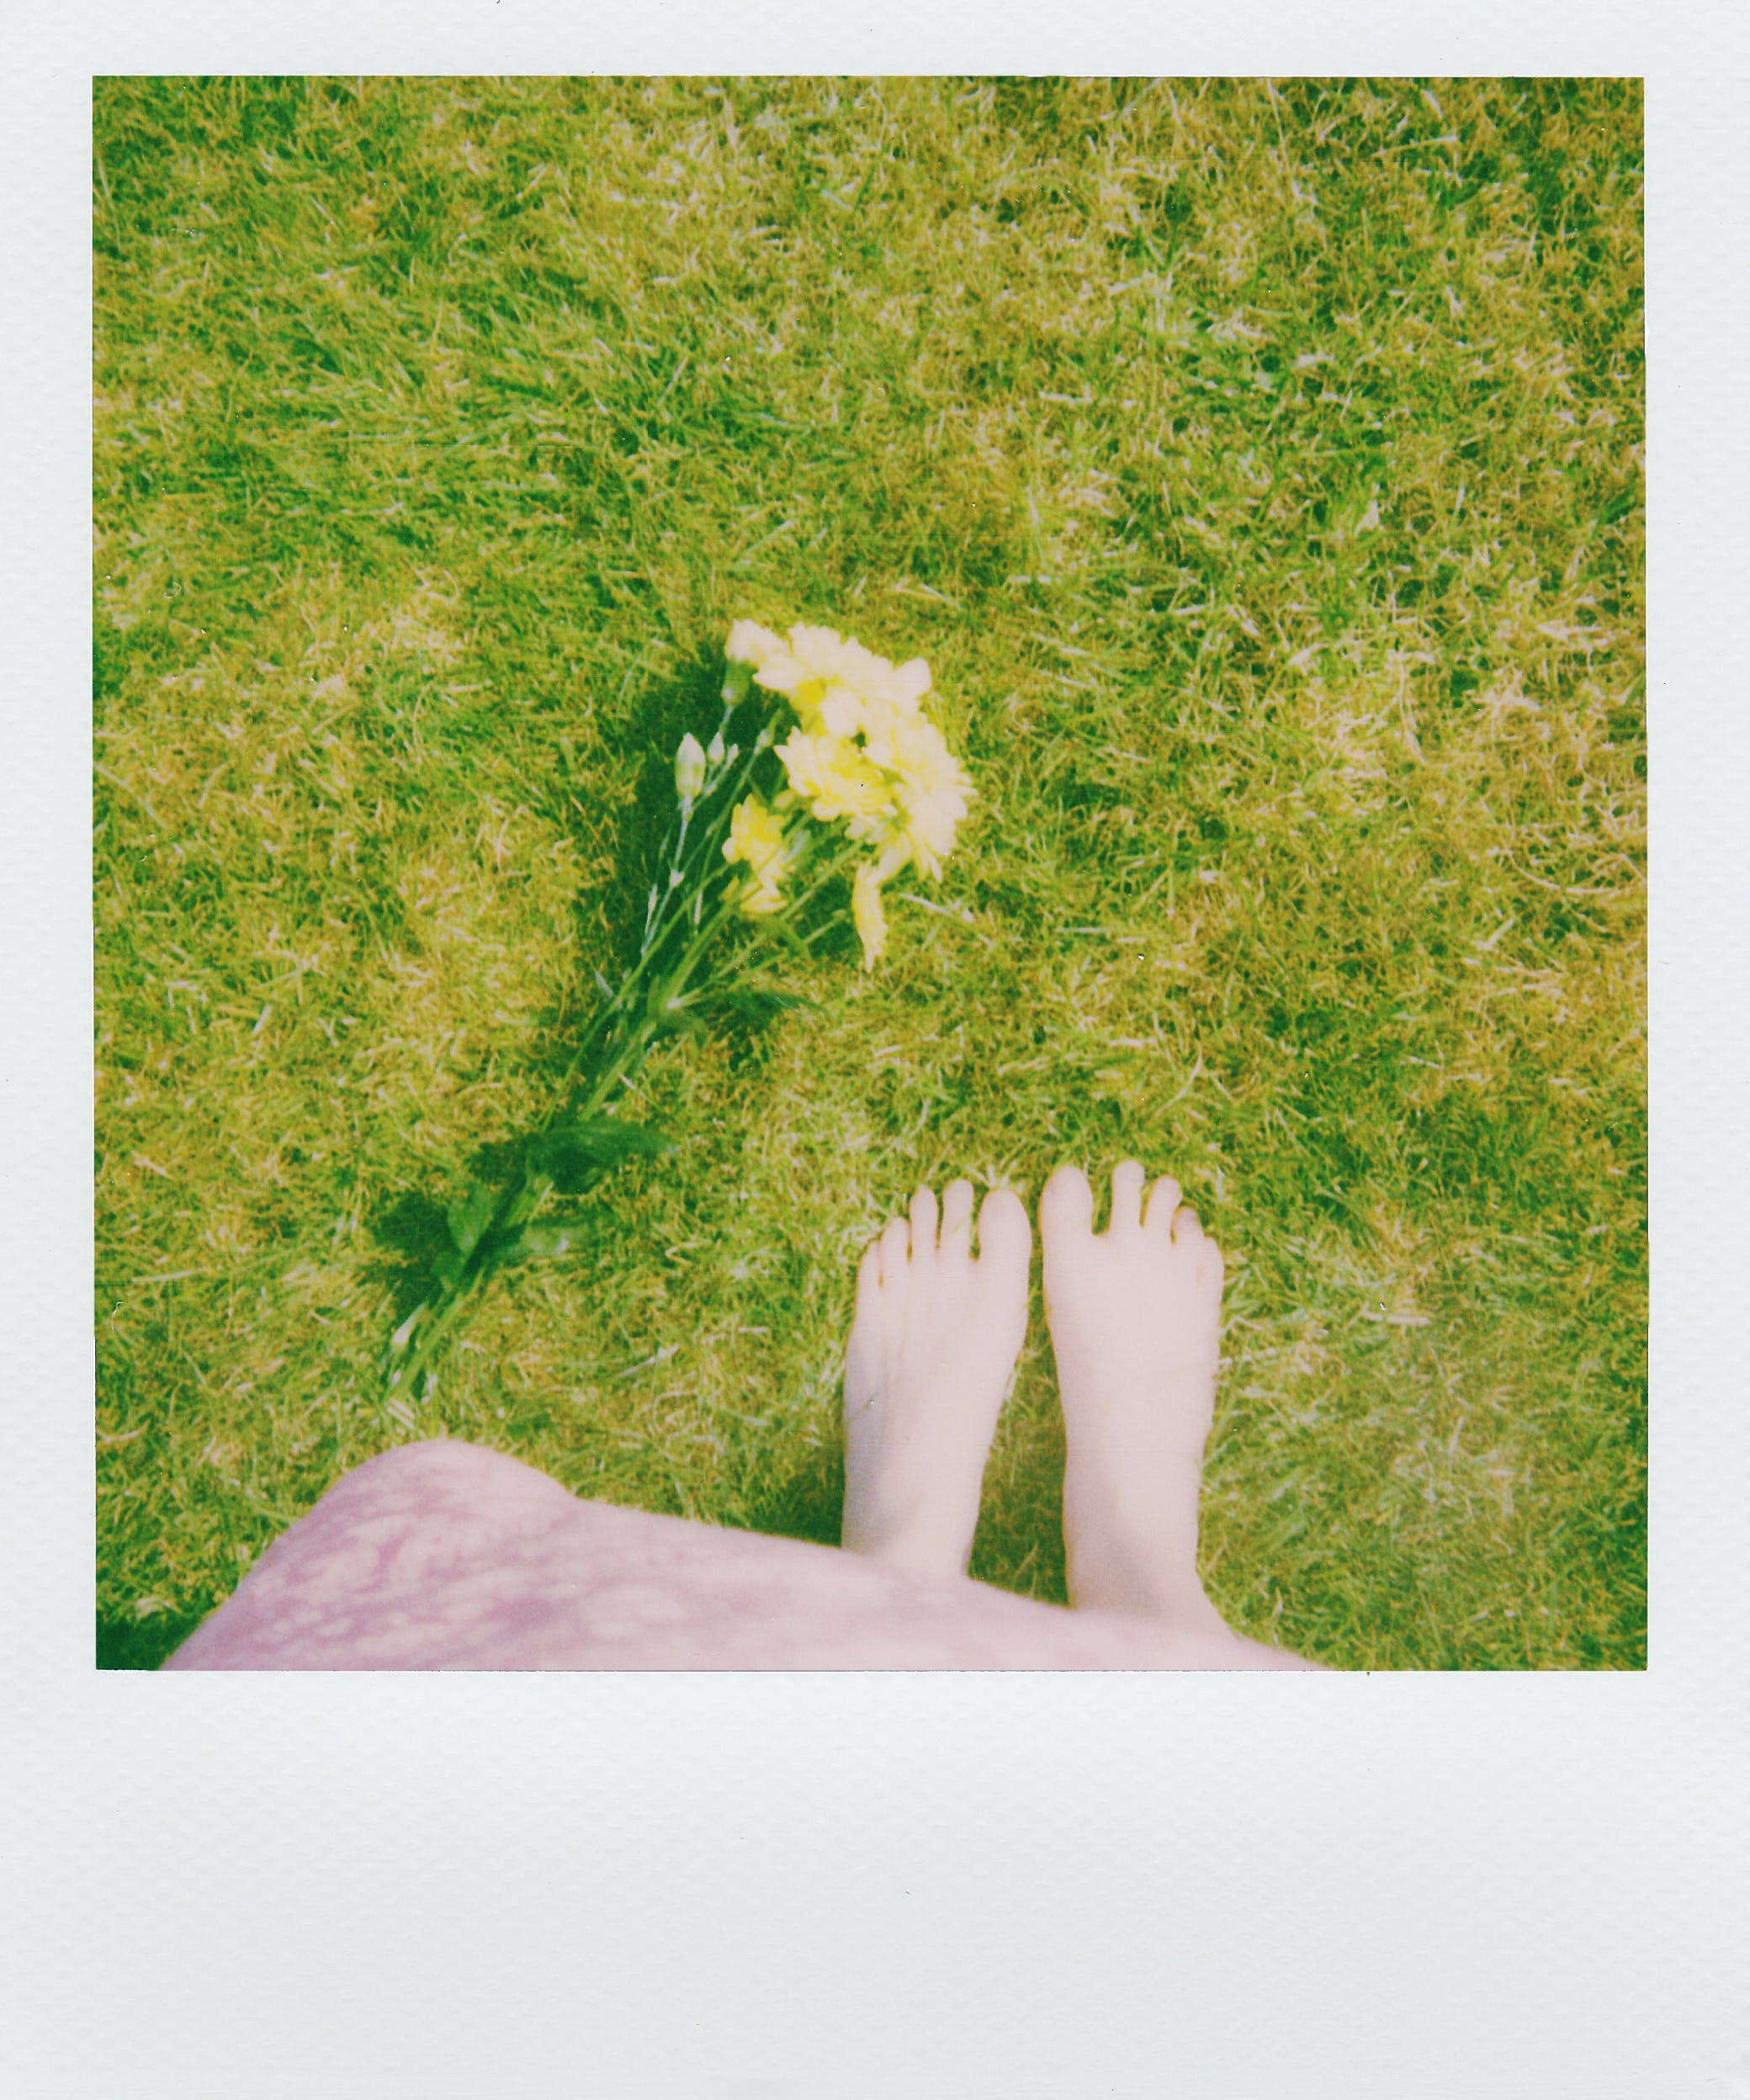 Person Standing on Grass Beside Petaled Flower